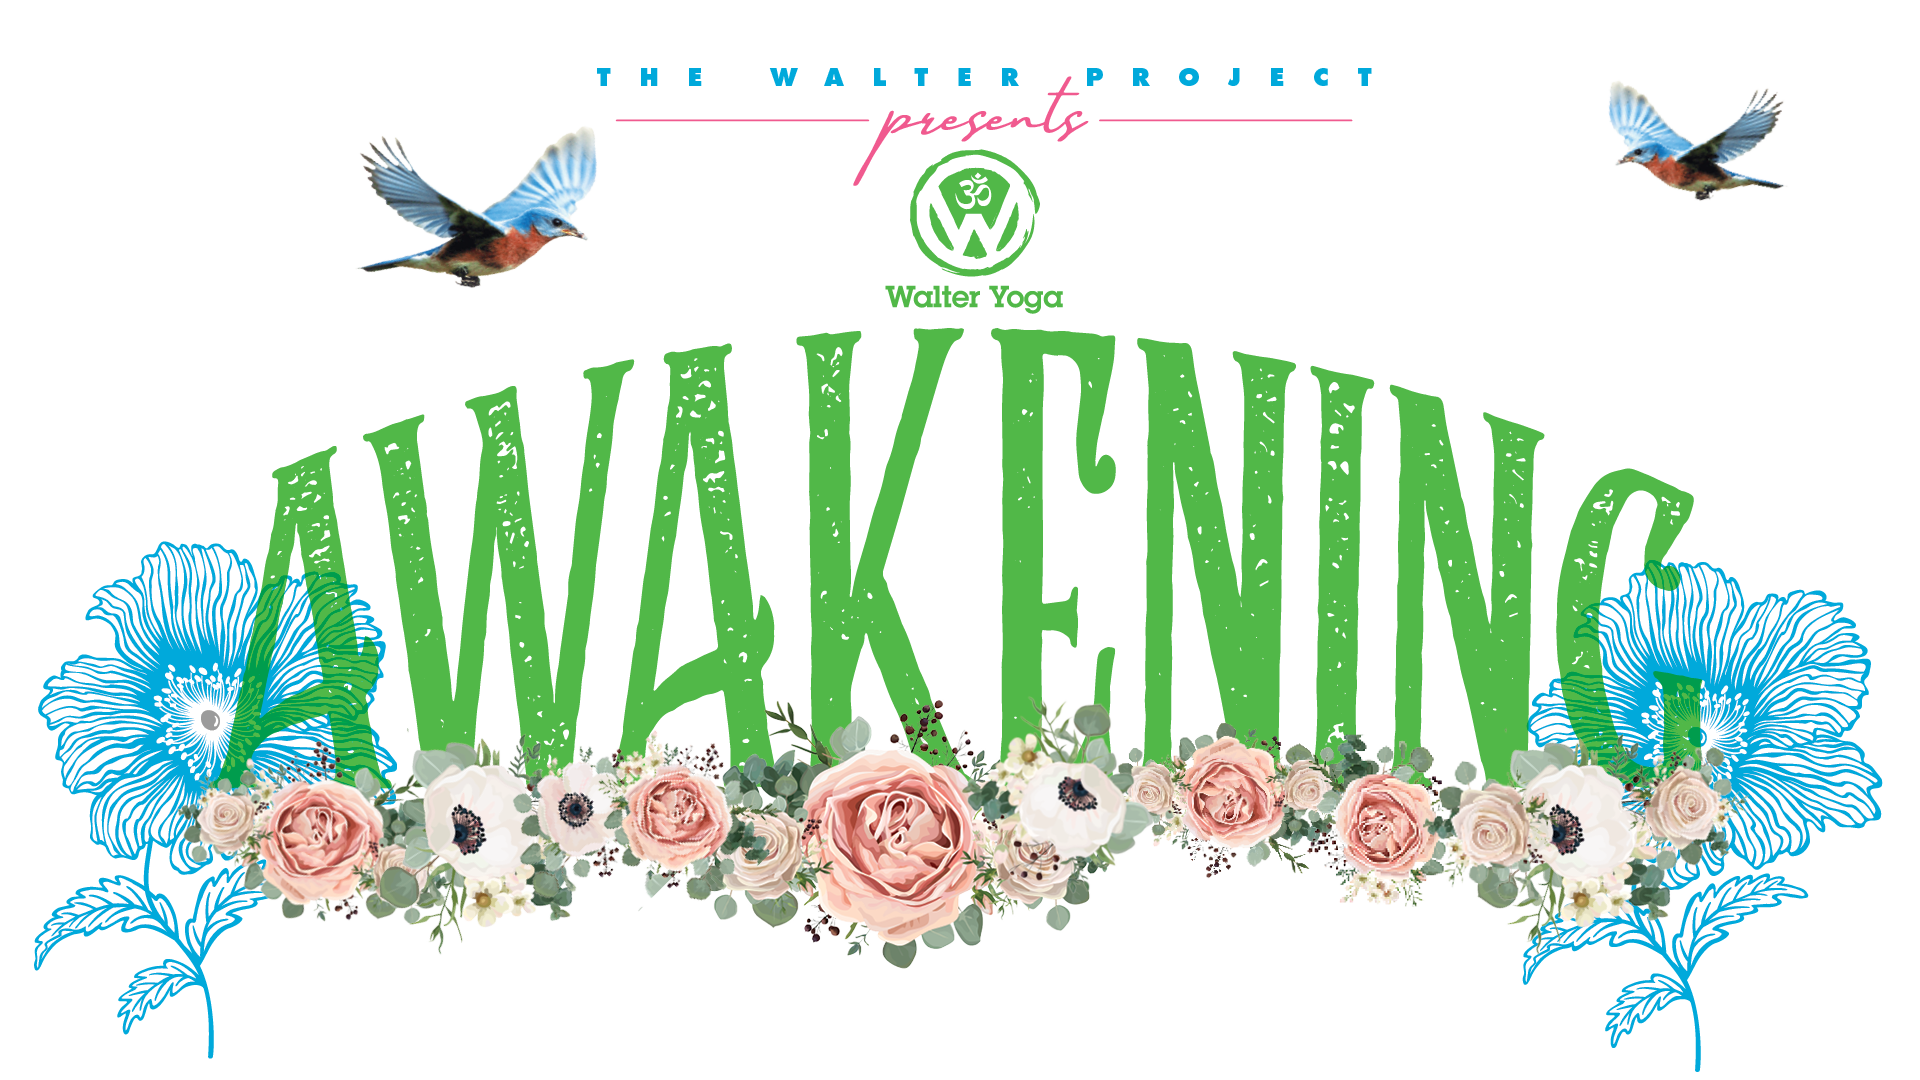 EventWebsite_AWAKENING_329_1920x1080_2019.png